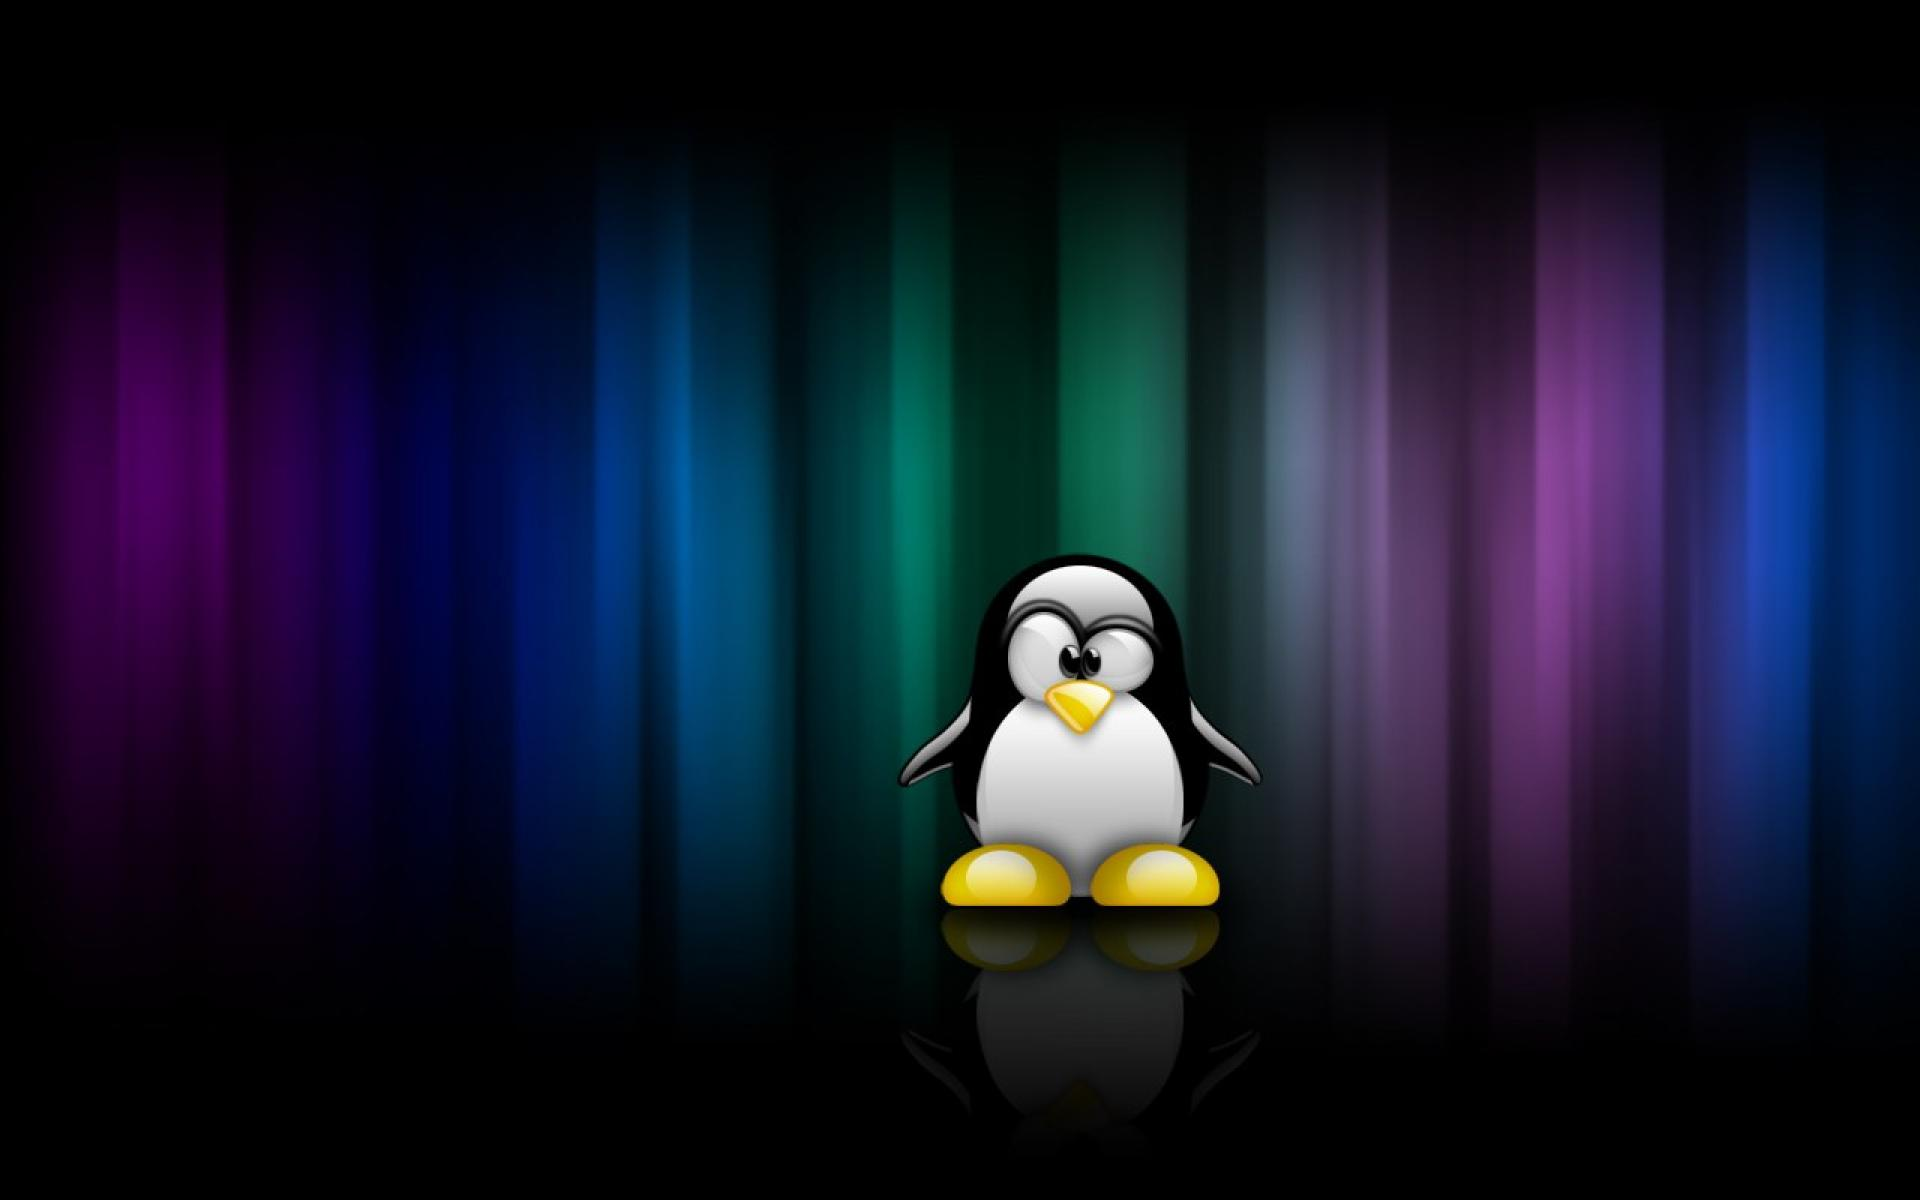 Linux wallpaper 1280x800 HQ WALLPAPER   39603 1920x1200